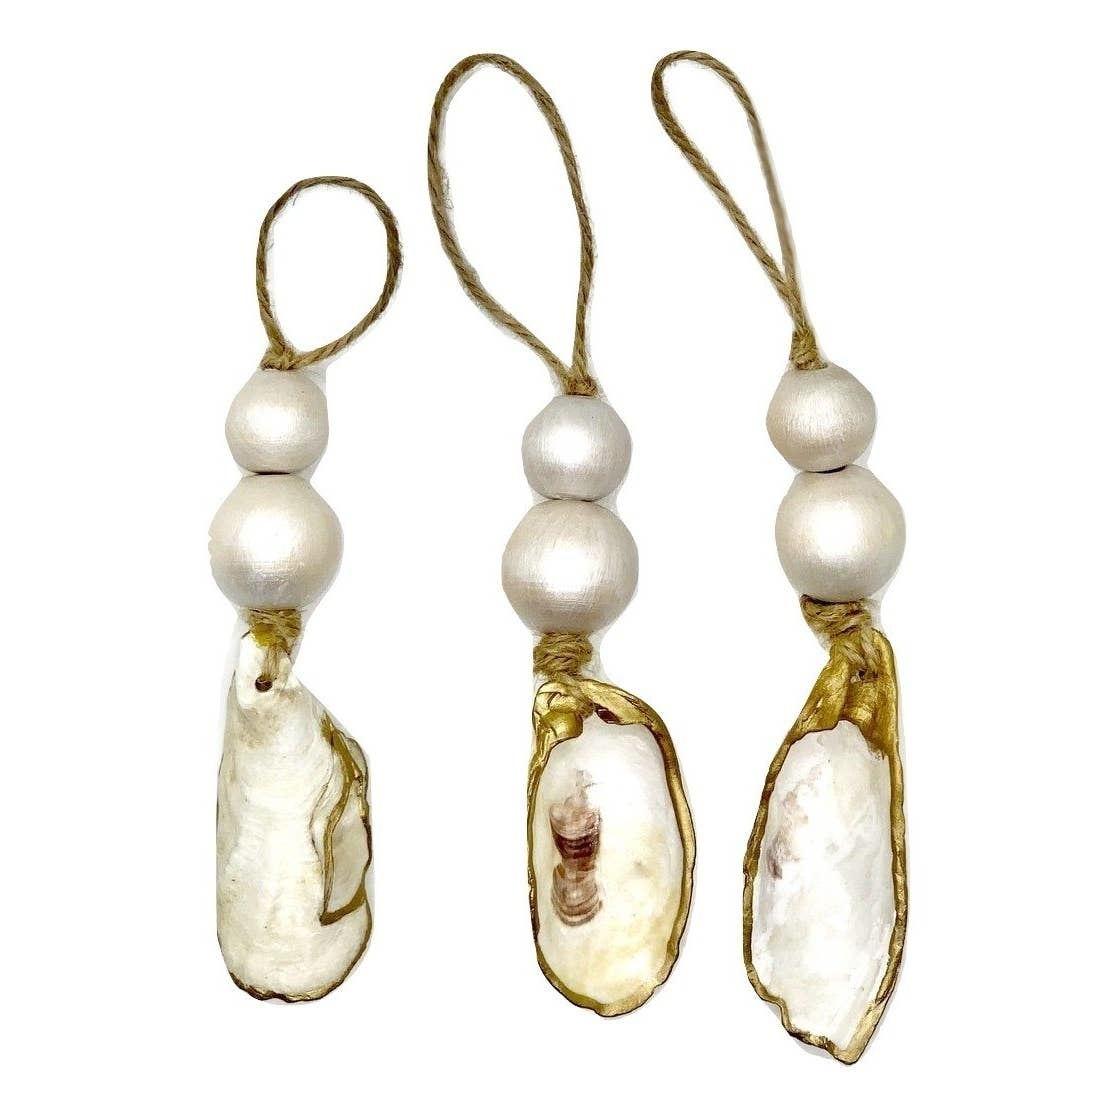 The Gilded Shell Hint of Pearl Ornament Set of 3